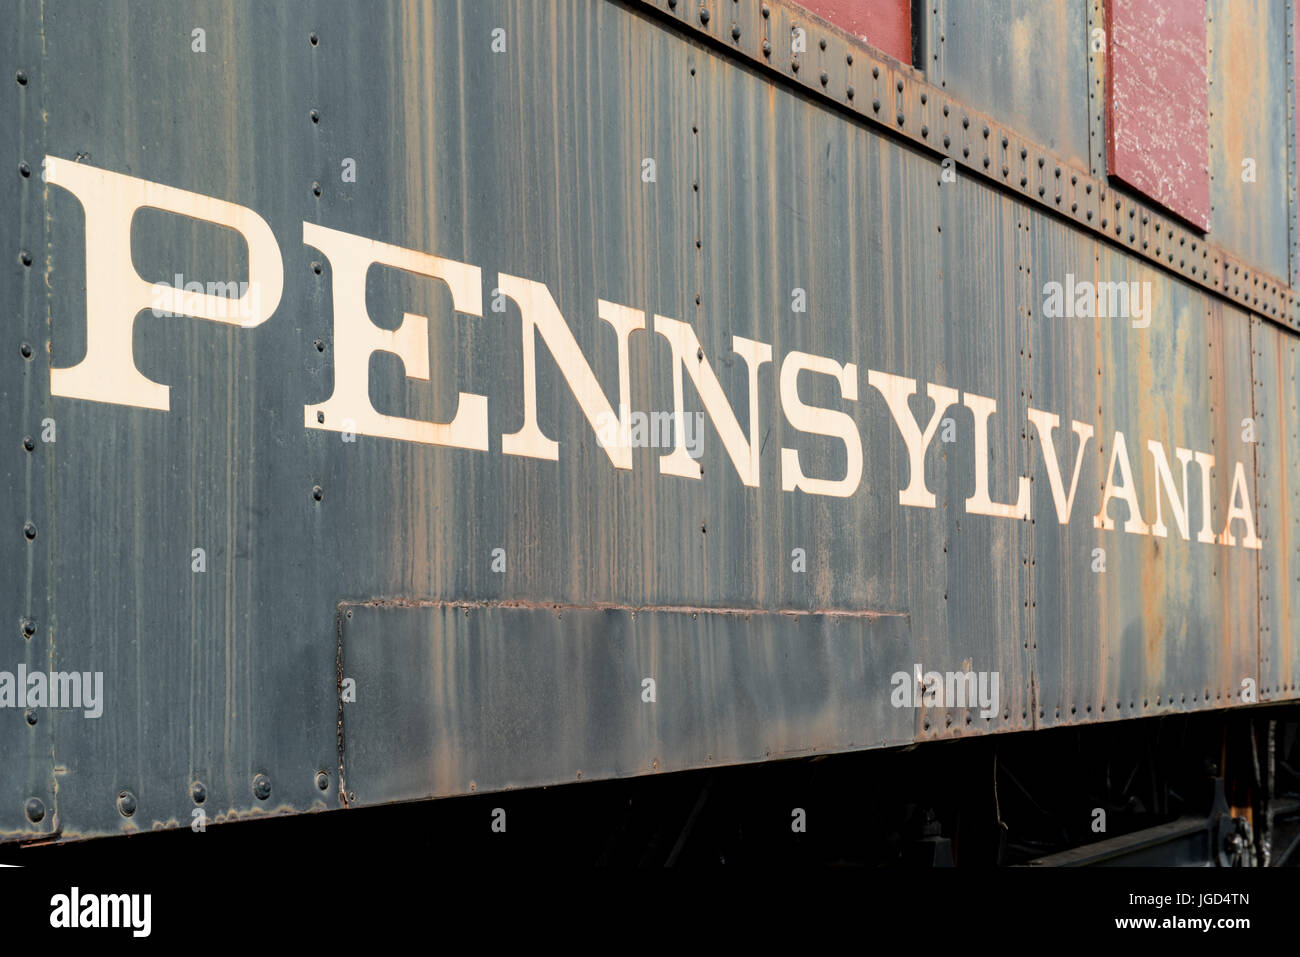 The side of an old rusty steam locomotive from Pennsylvania